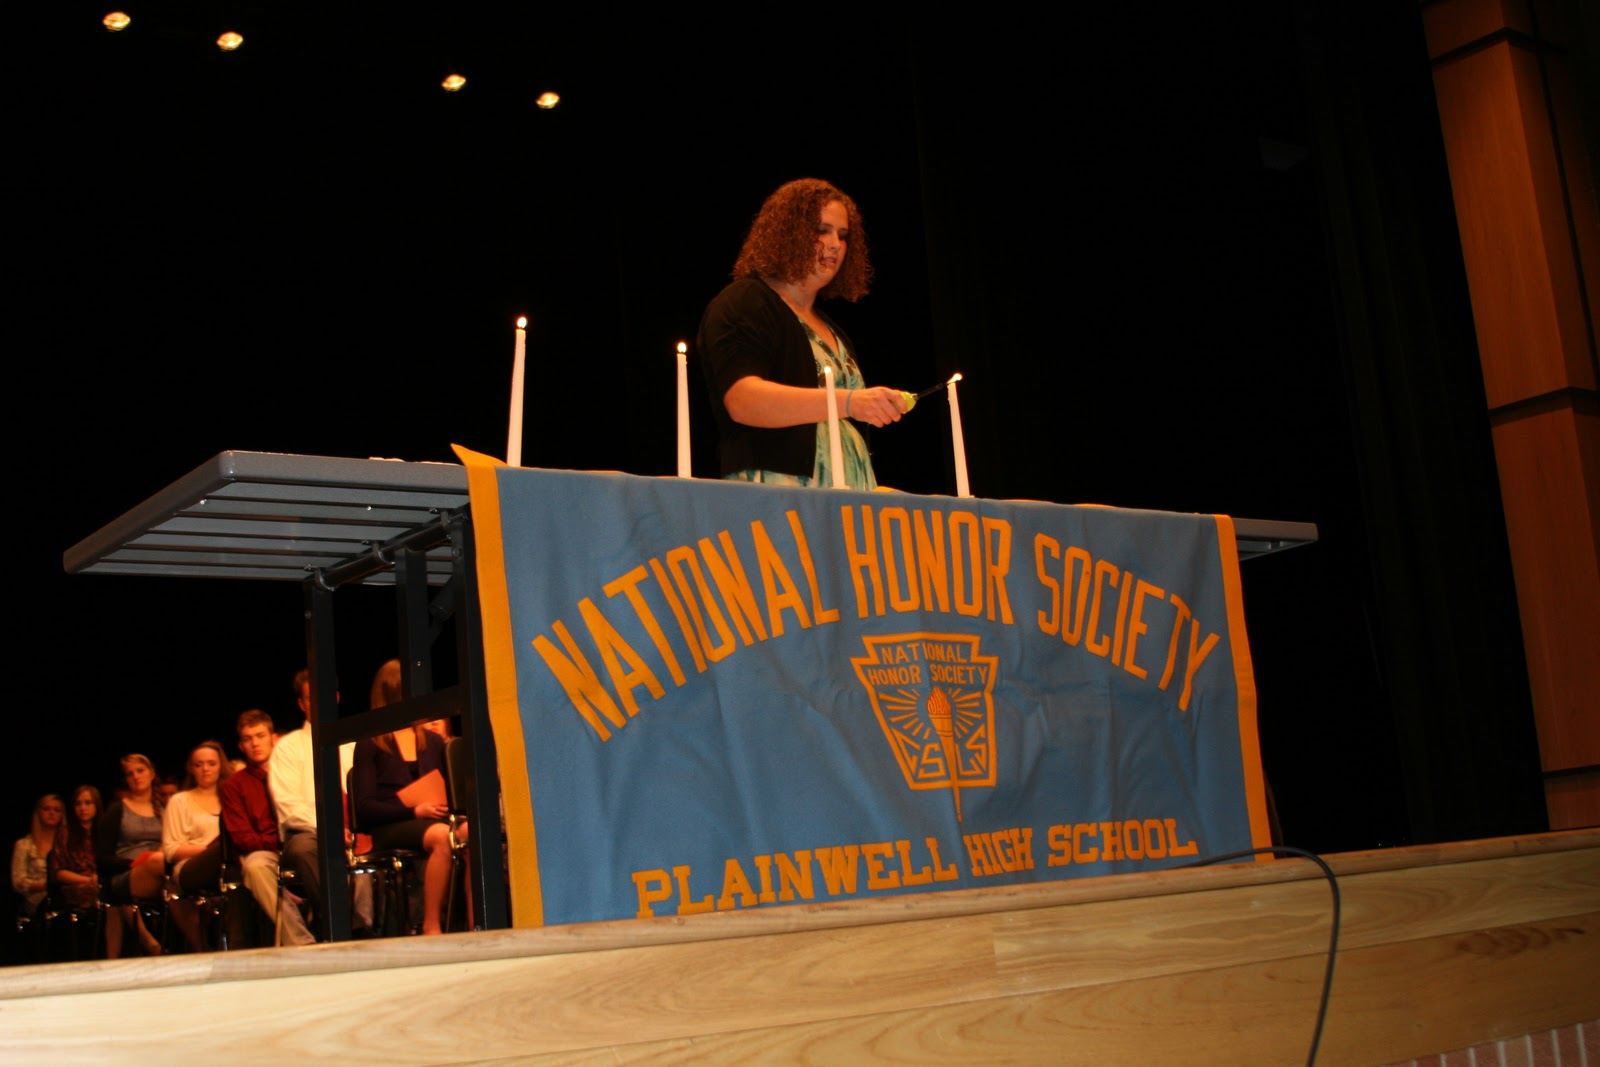 why should i be inducted in national honor society? essay For example, ever since i was inducted into the national junior honor society i have been striving to that is why i try very hard to keep my grades up and keep them high the better i do and the more i - being a member of the national honor society would allow me to continue my commitment to.